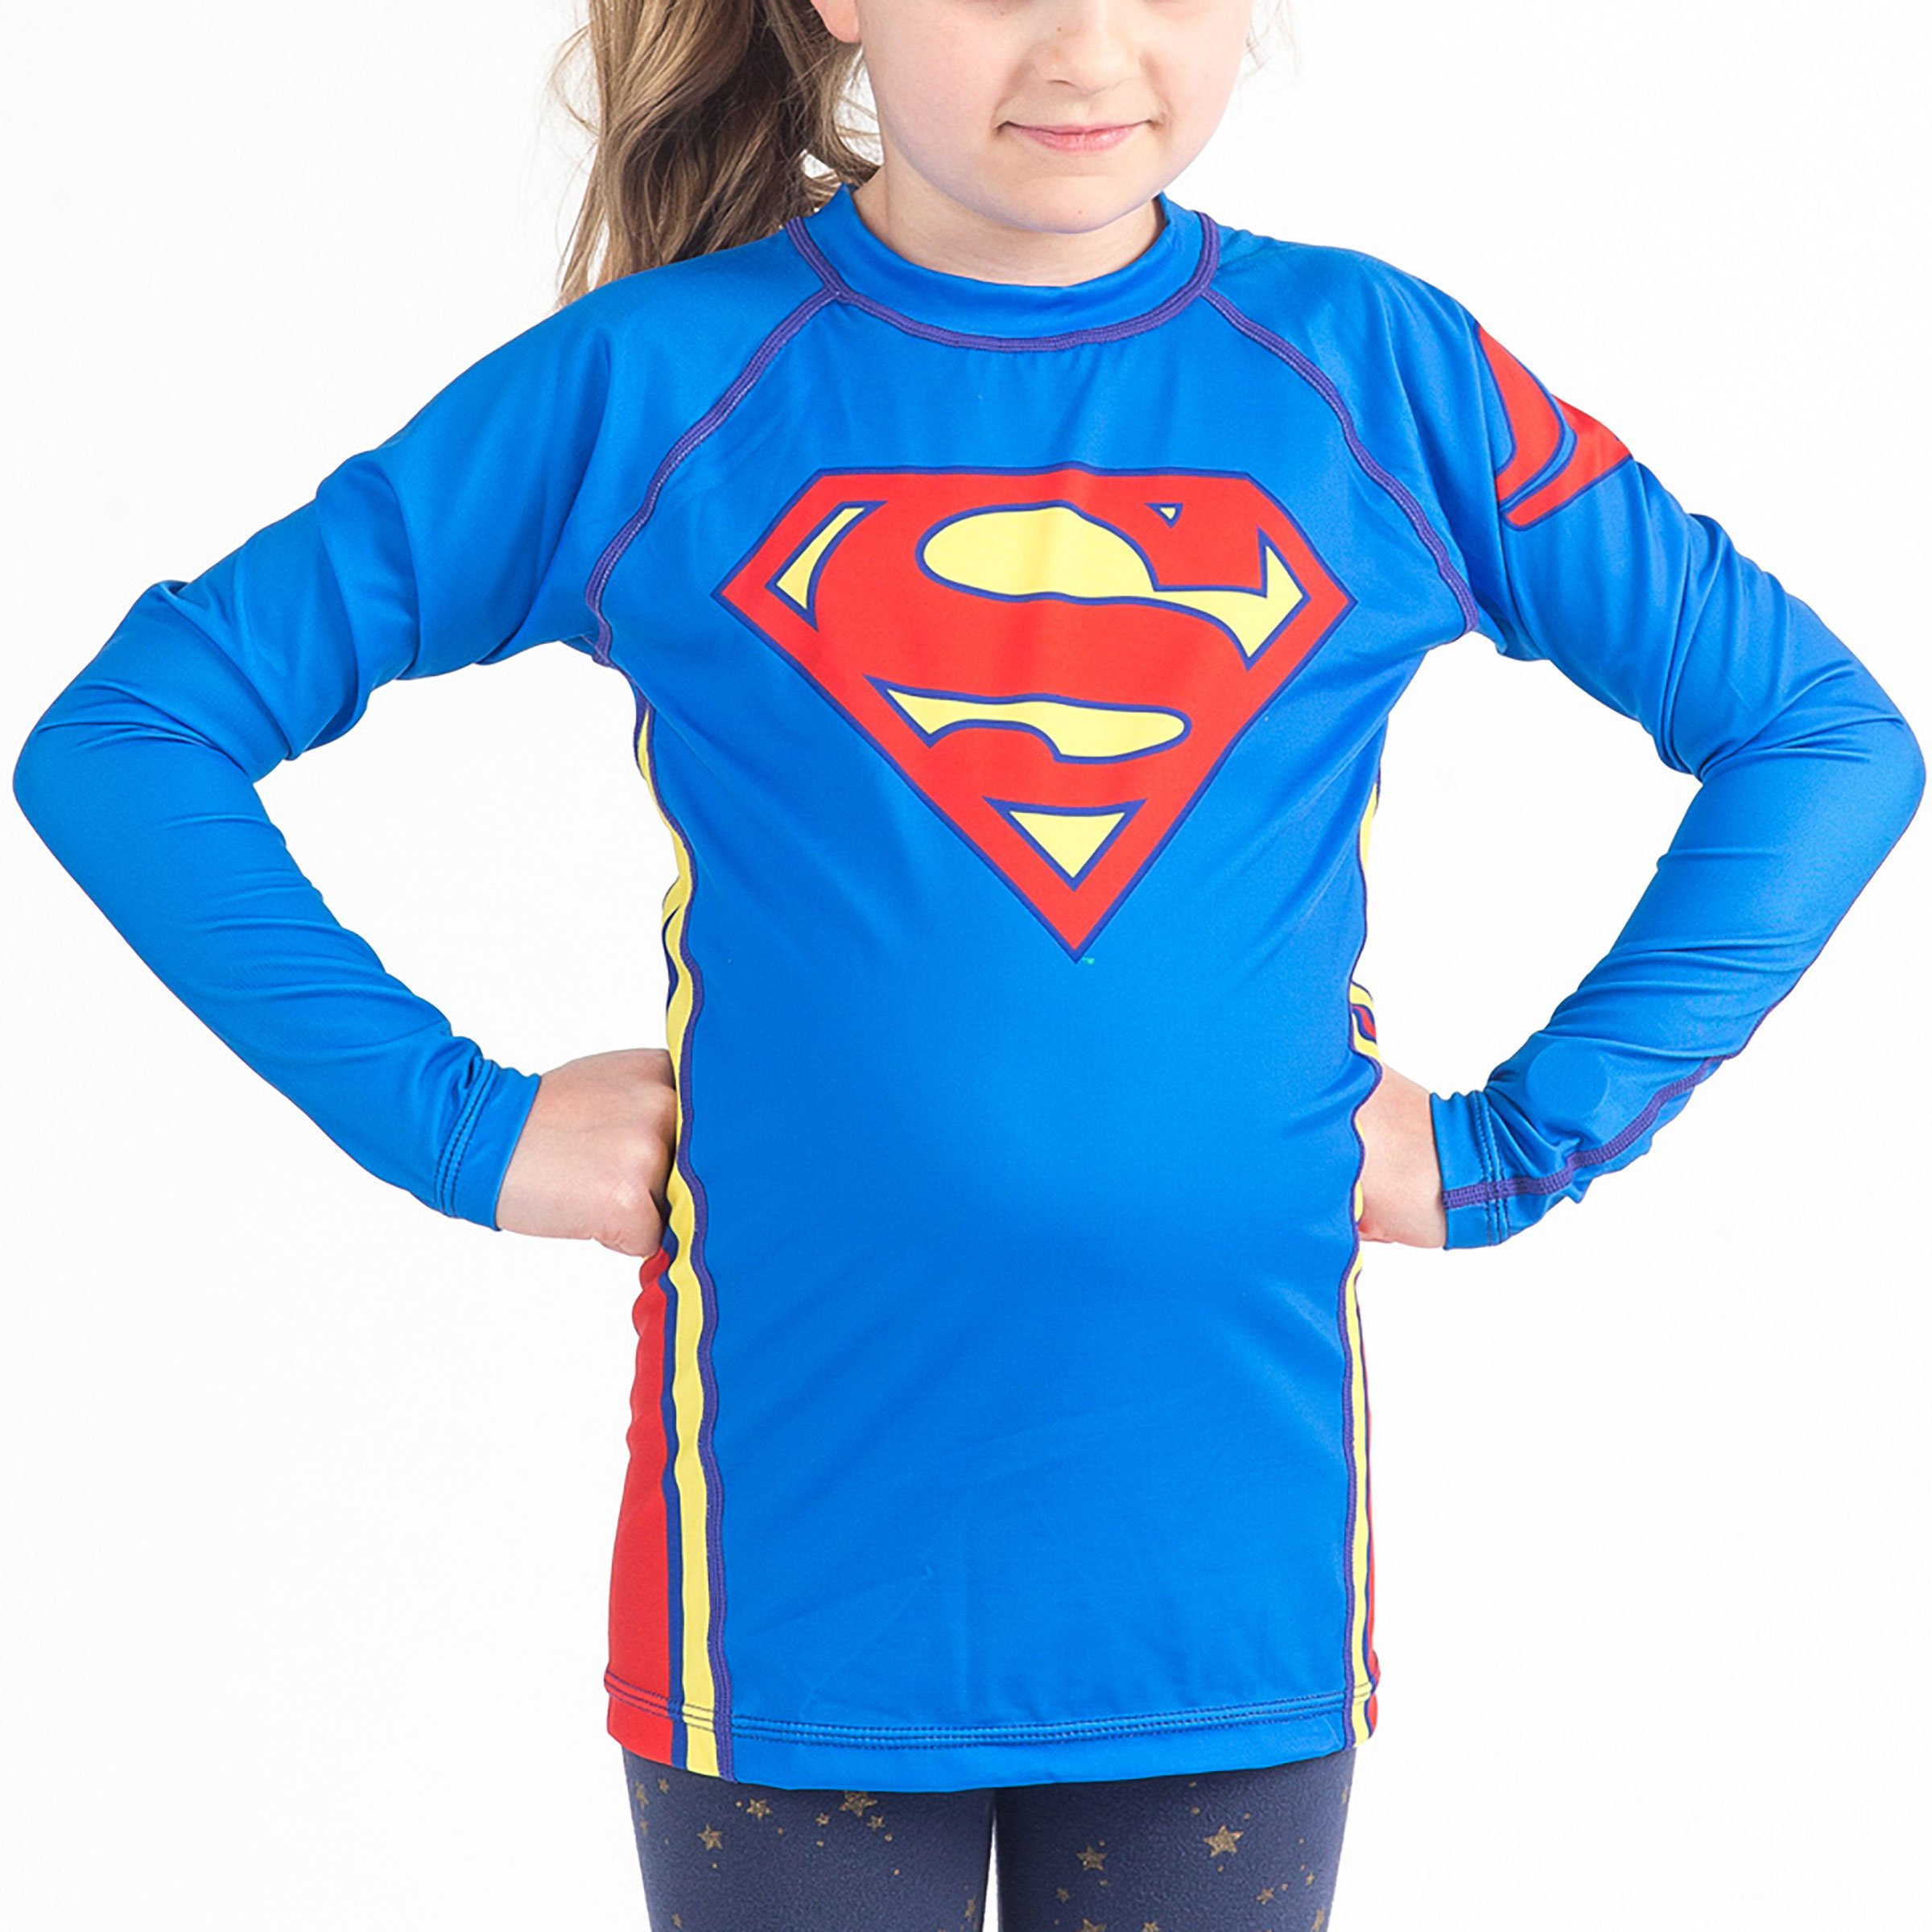 Fusion Superman Logo Kids Rash Guard Compression Shirt -Long Sleeve (Large) by Fusion Fight Gear